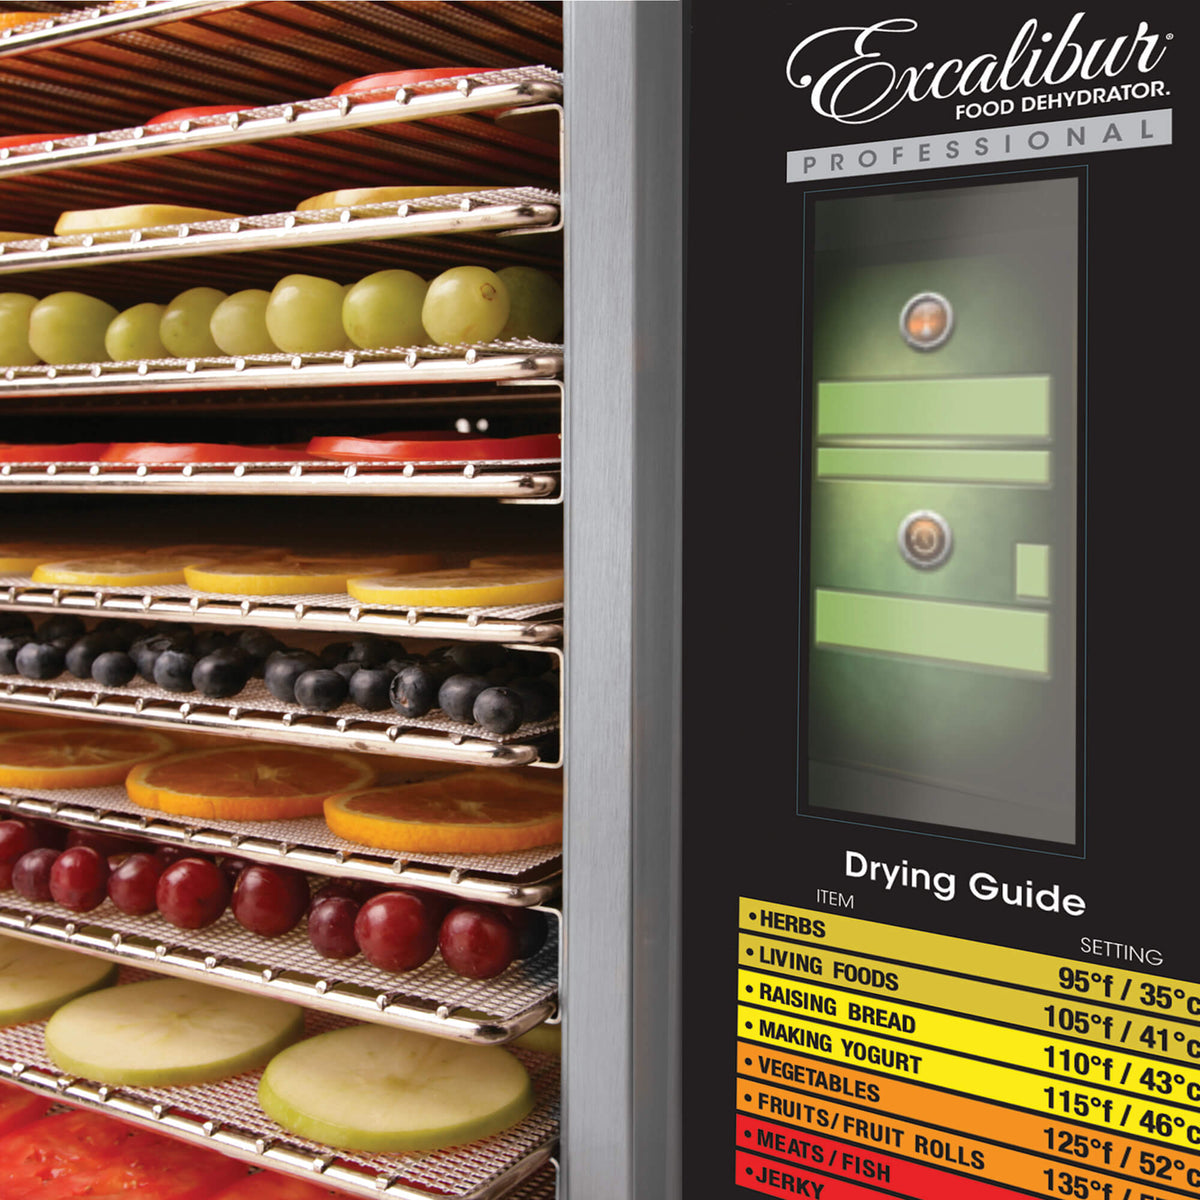 Excalibur COMM1 12 tray stainless steel commercial digital dehydrator control panel with food on the trays.